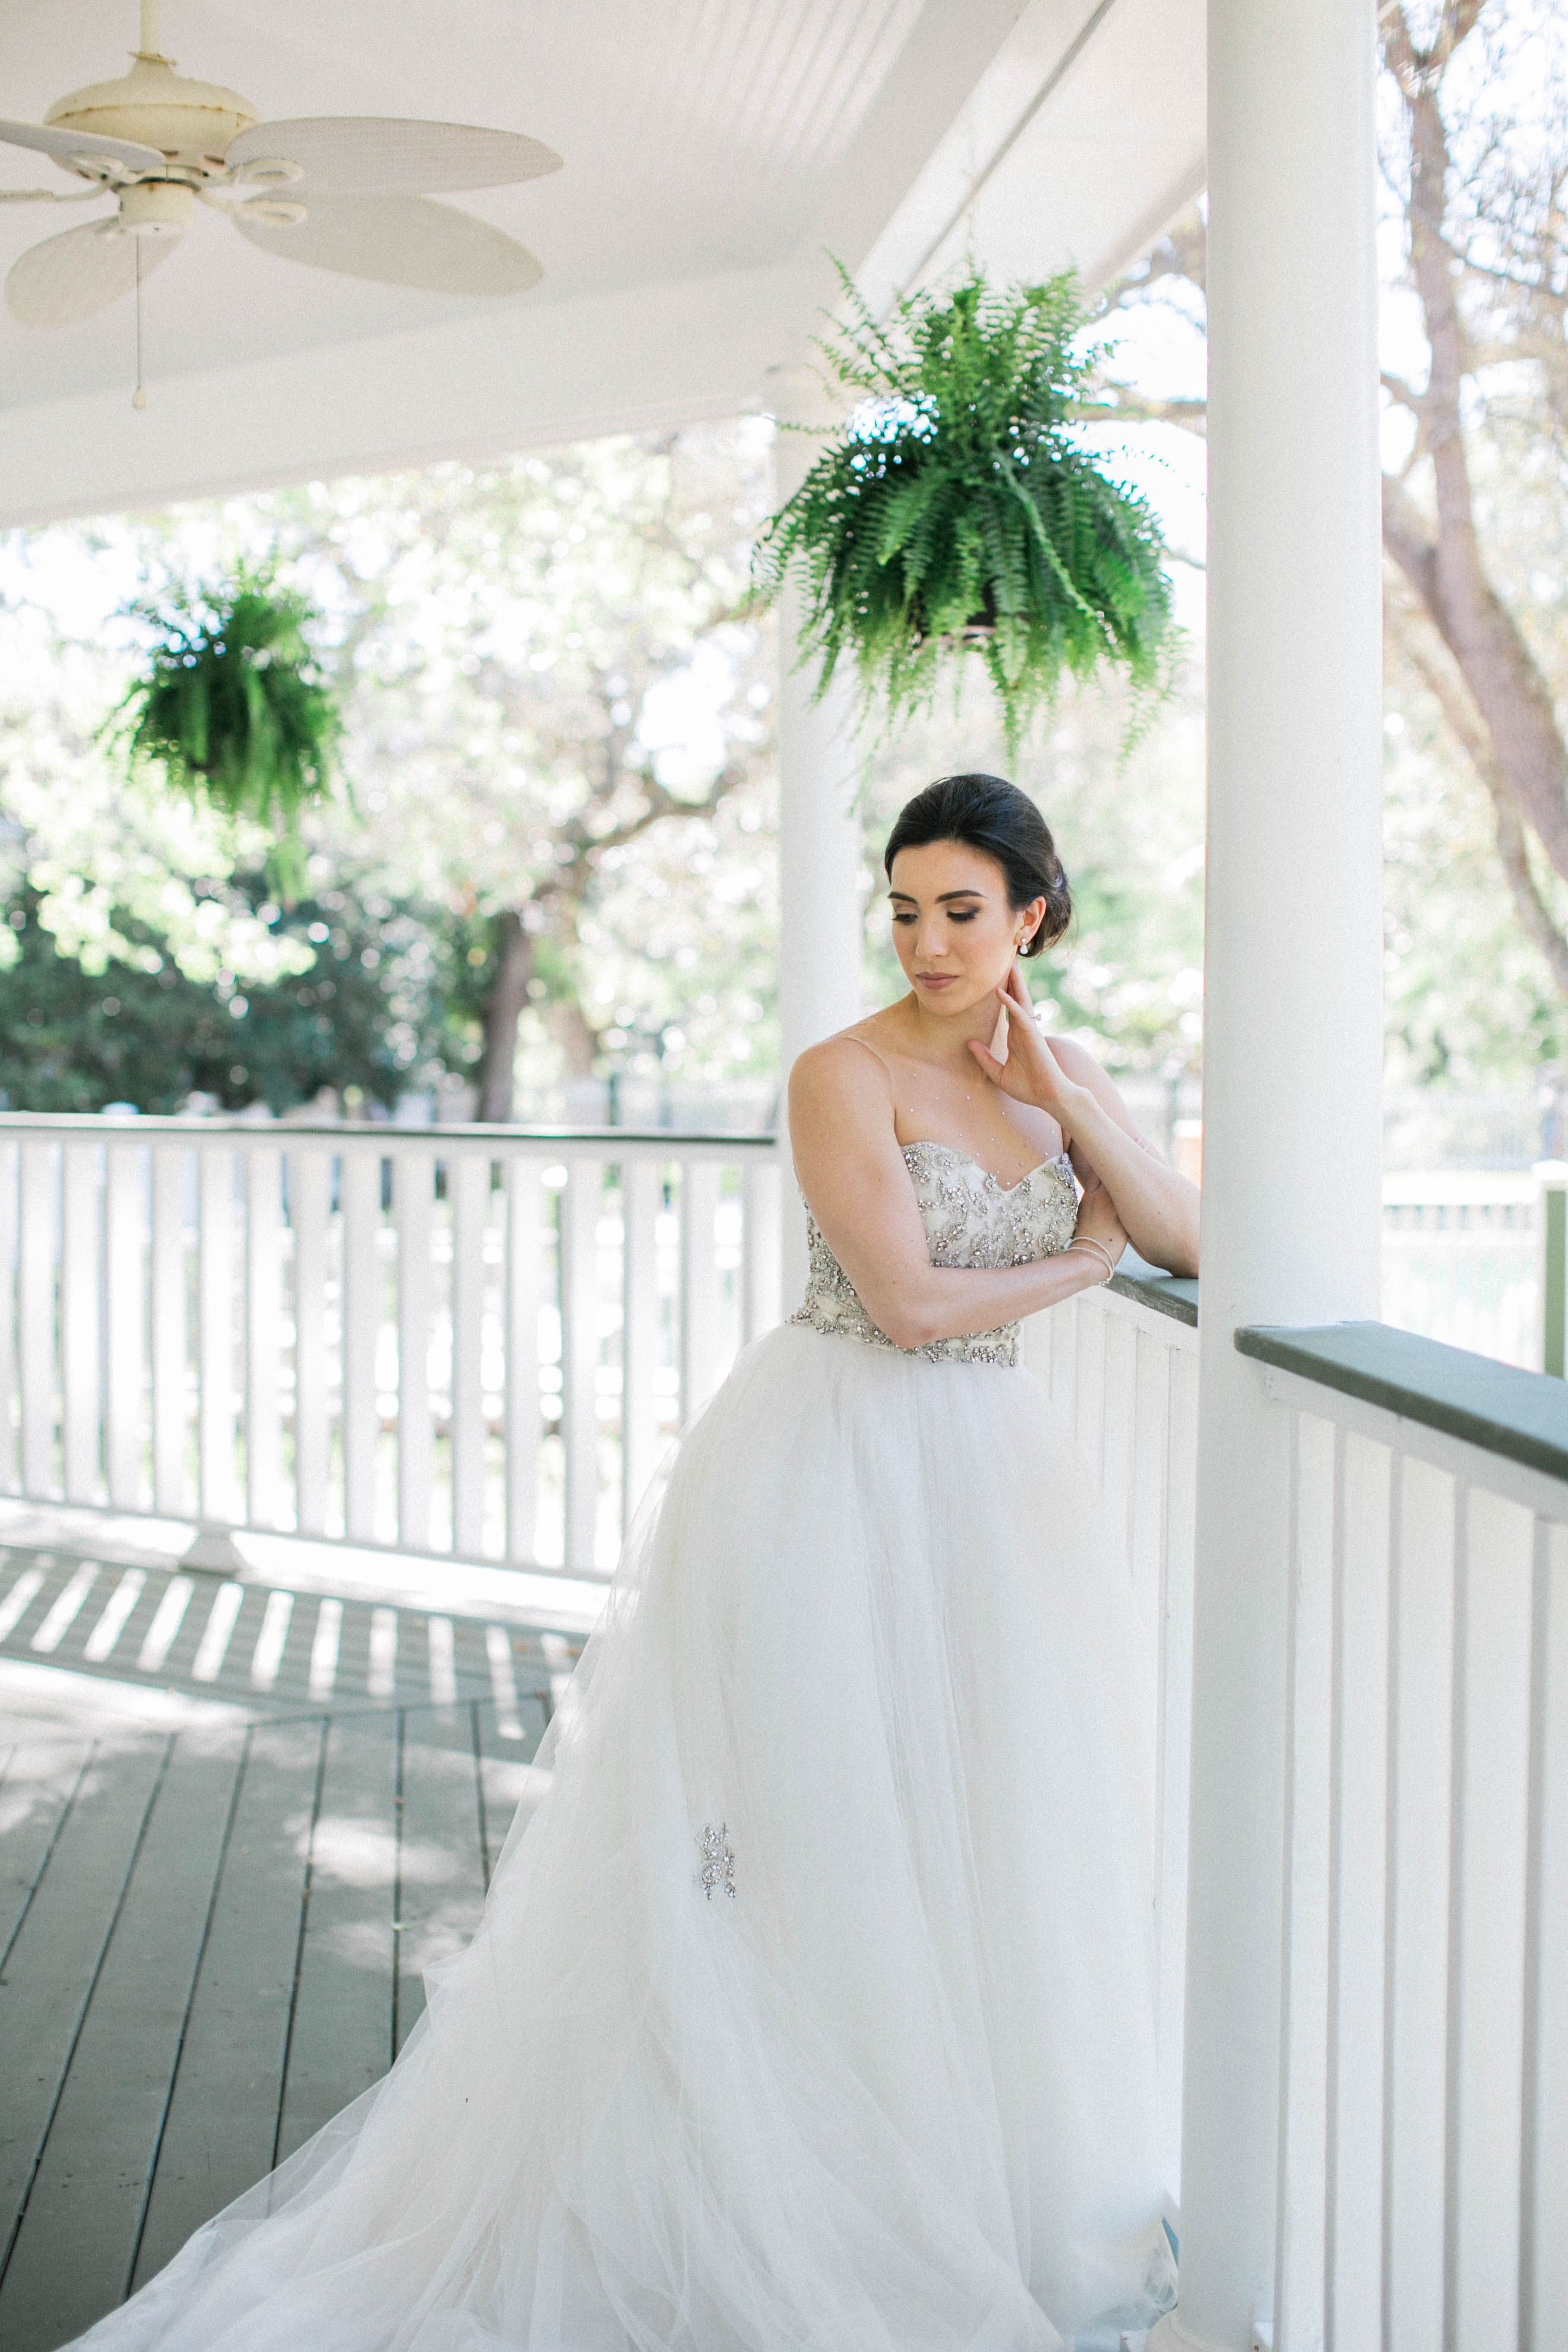 Southern style wedding dresses  Southern Bridal Style  Southern Bridal Style  Pinterest